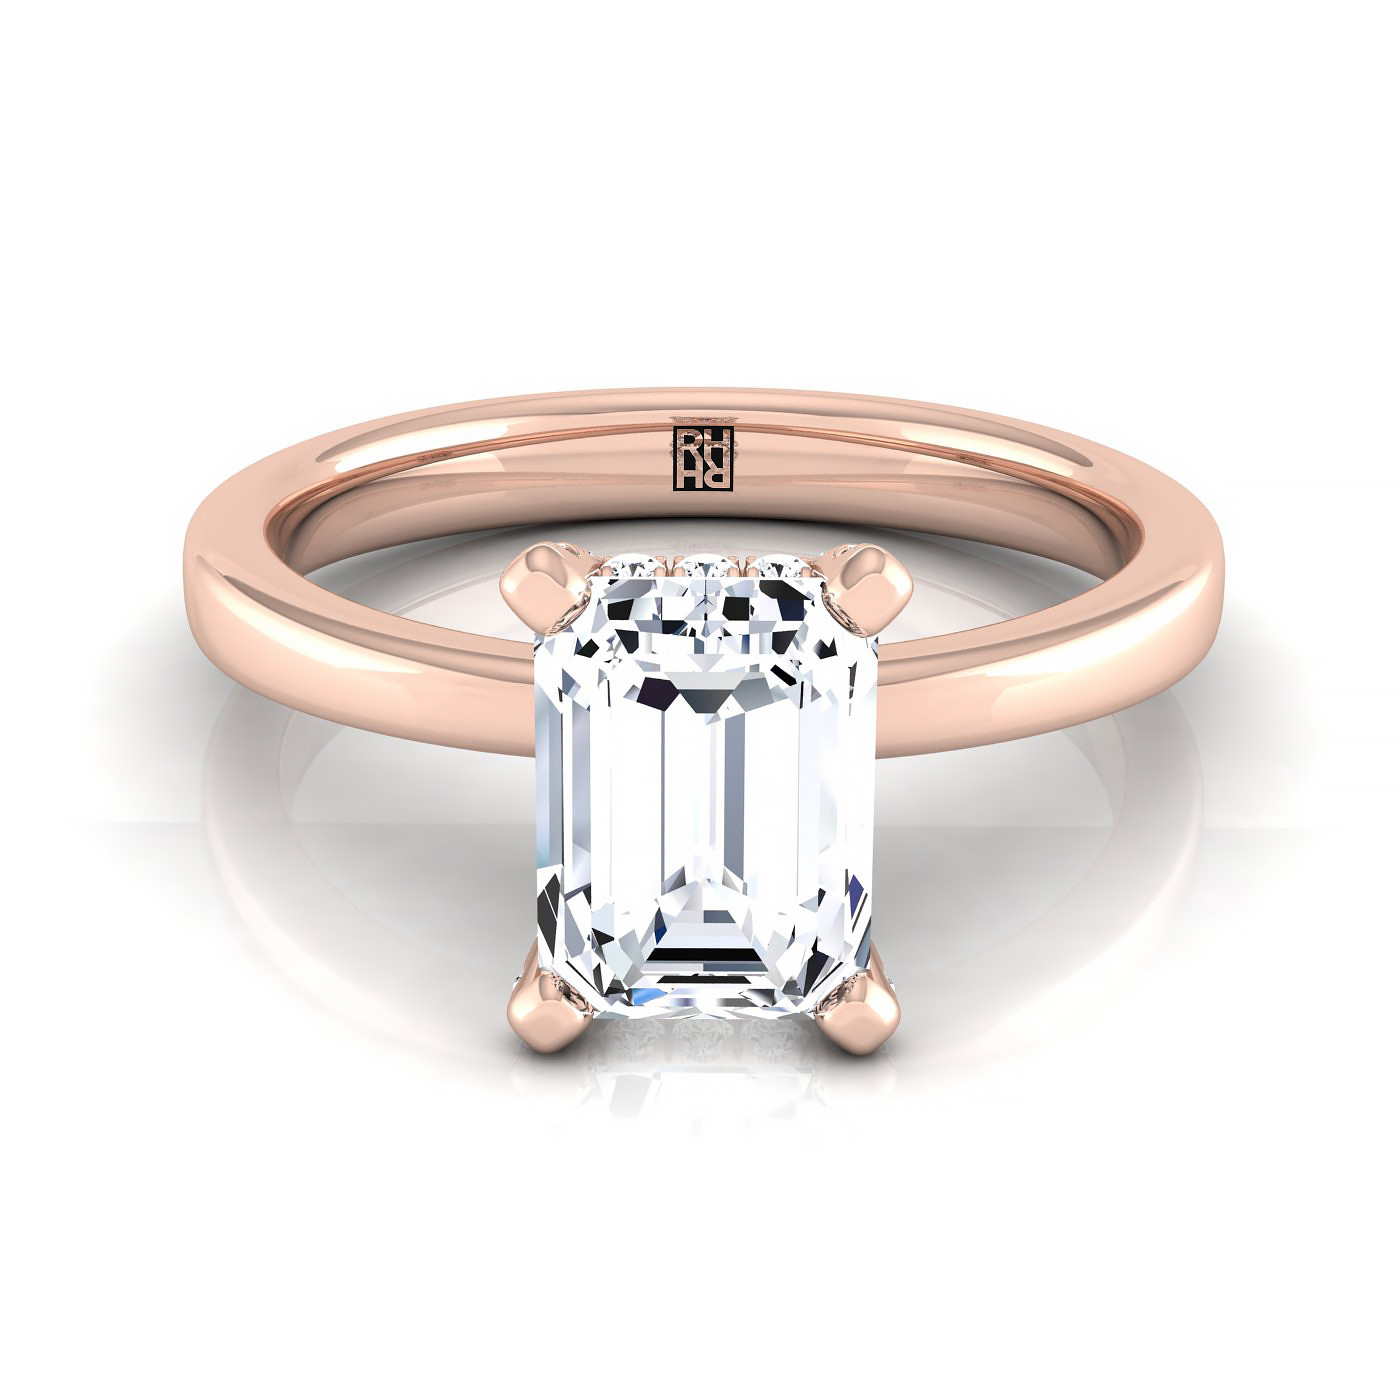 Emerald Cut Diamond Solitaire With Pave Basket Setting In 14k Rose Gold Throughout Solitaire Emerald Cut Engagement Rings (View 18 of 25)